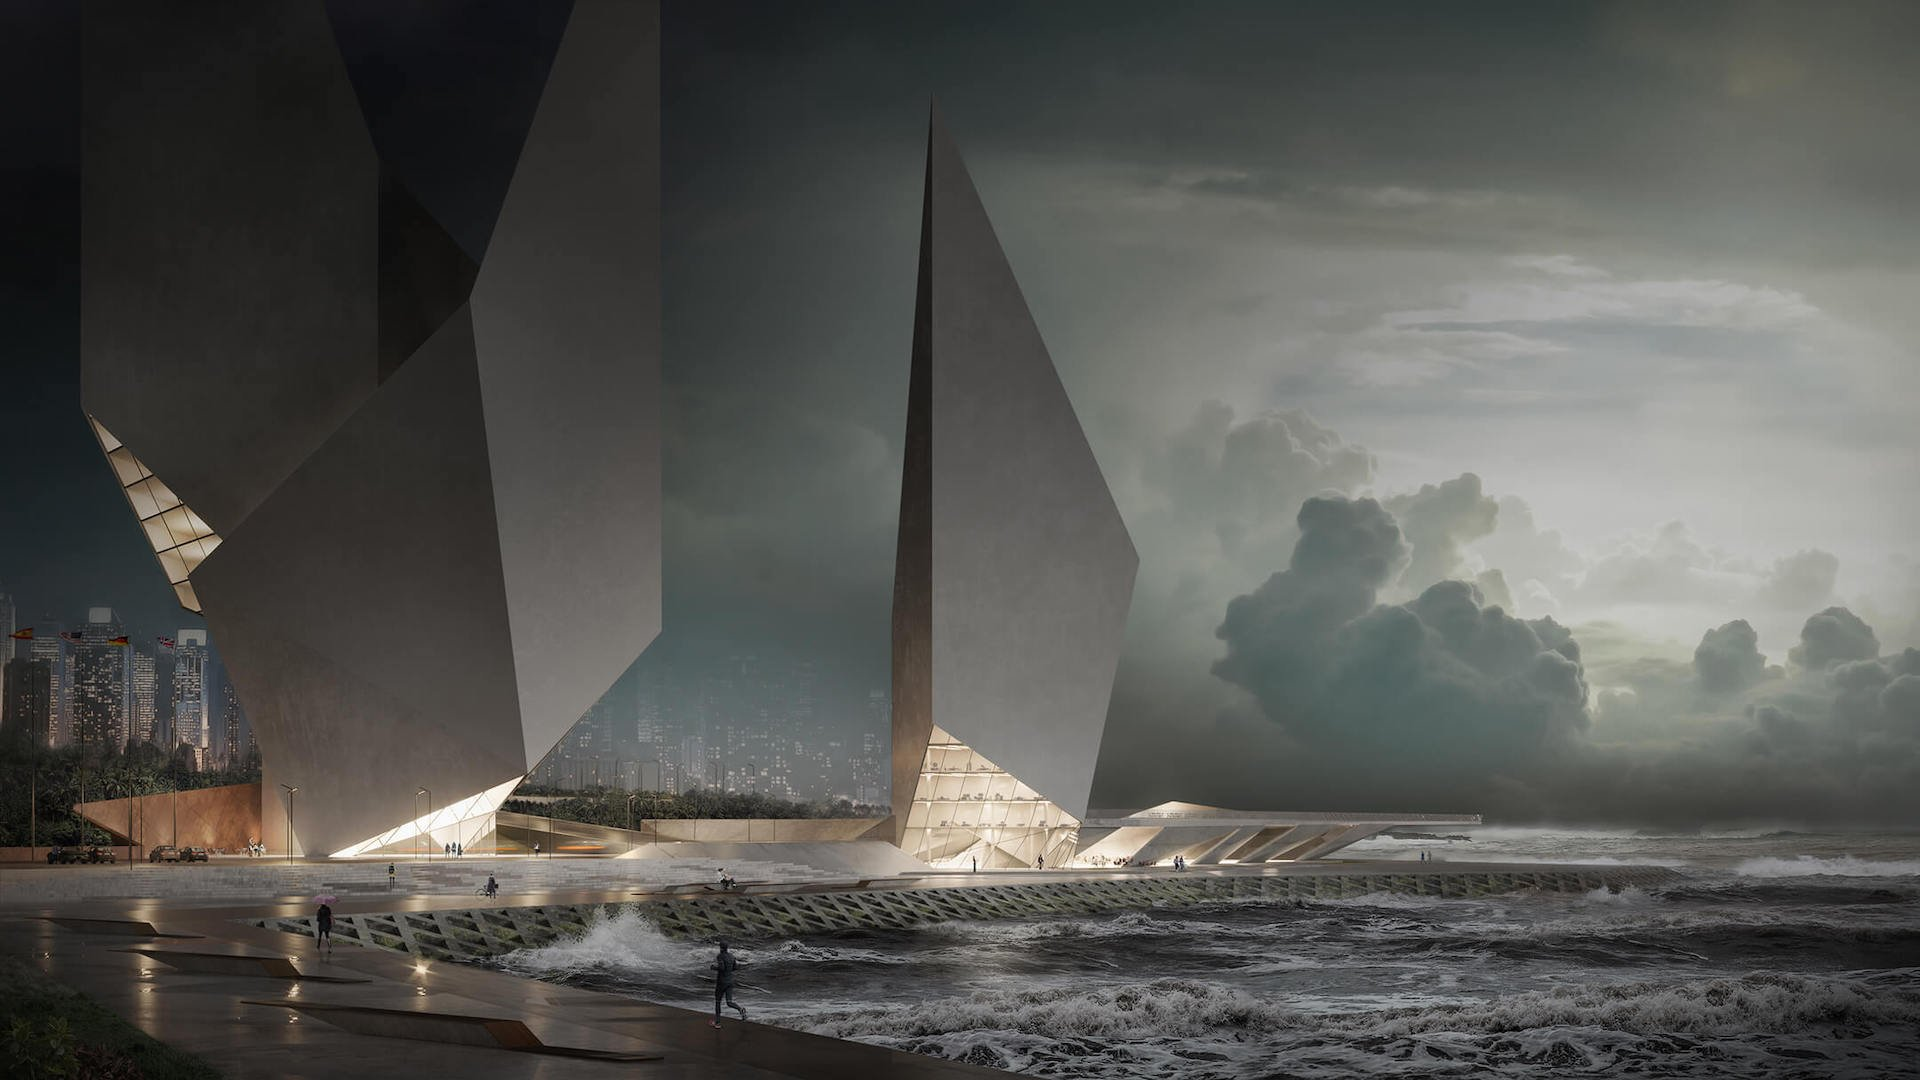 3D Render of a Hotel in Dramatic Weather Setting